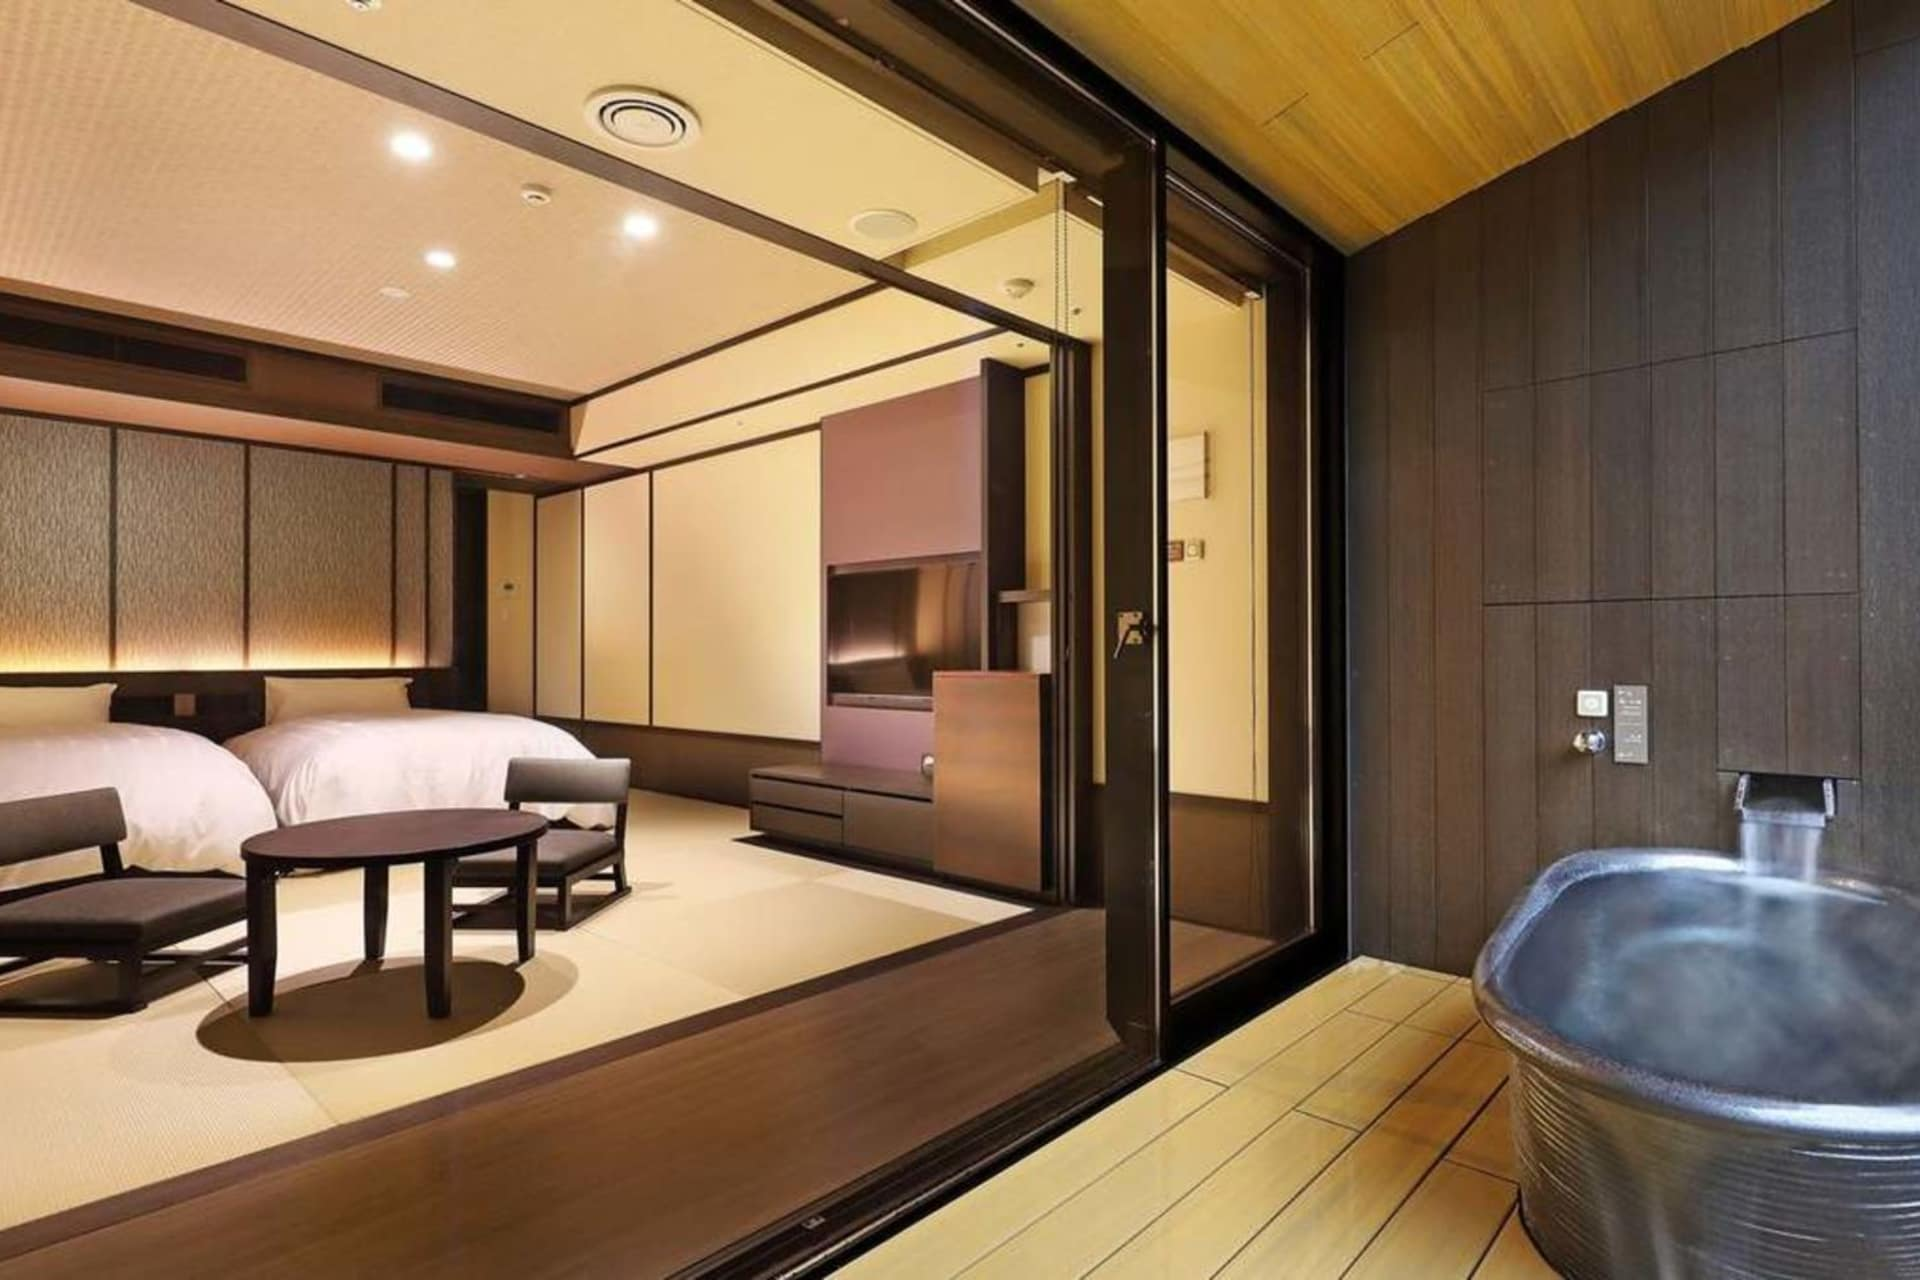 room: Deluxe Japanese room w open air bath